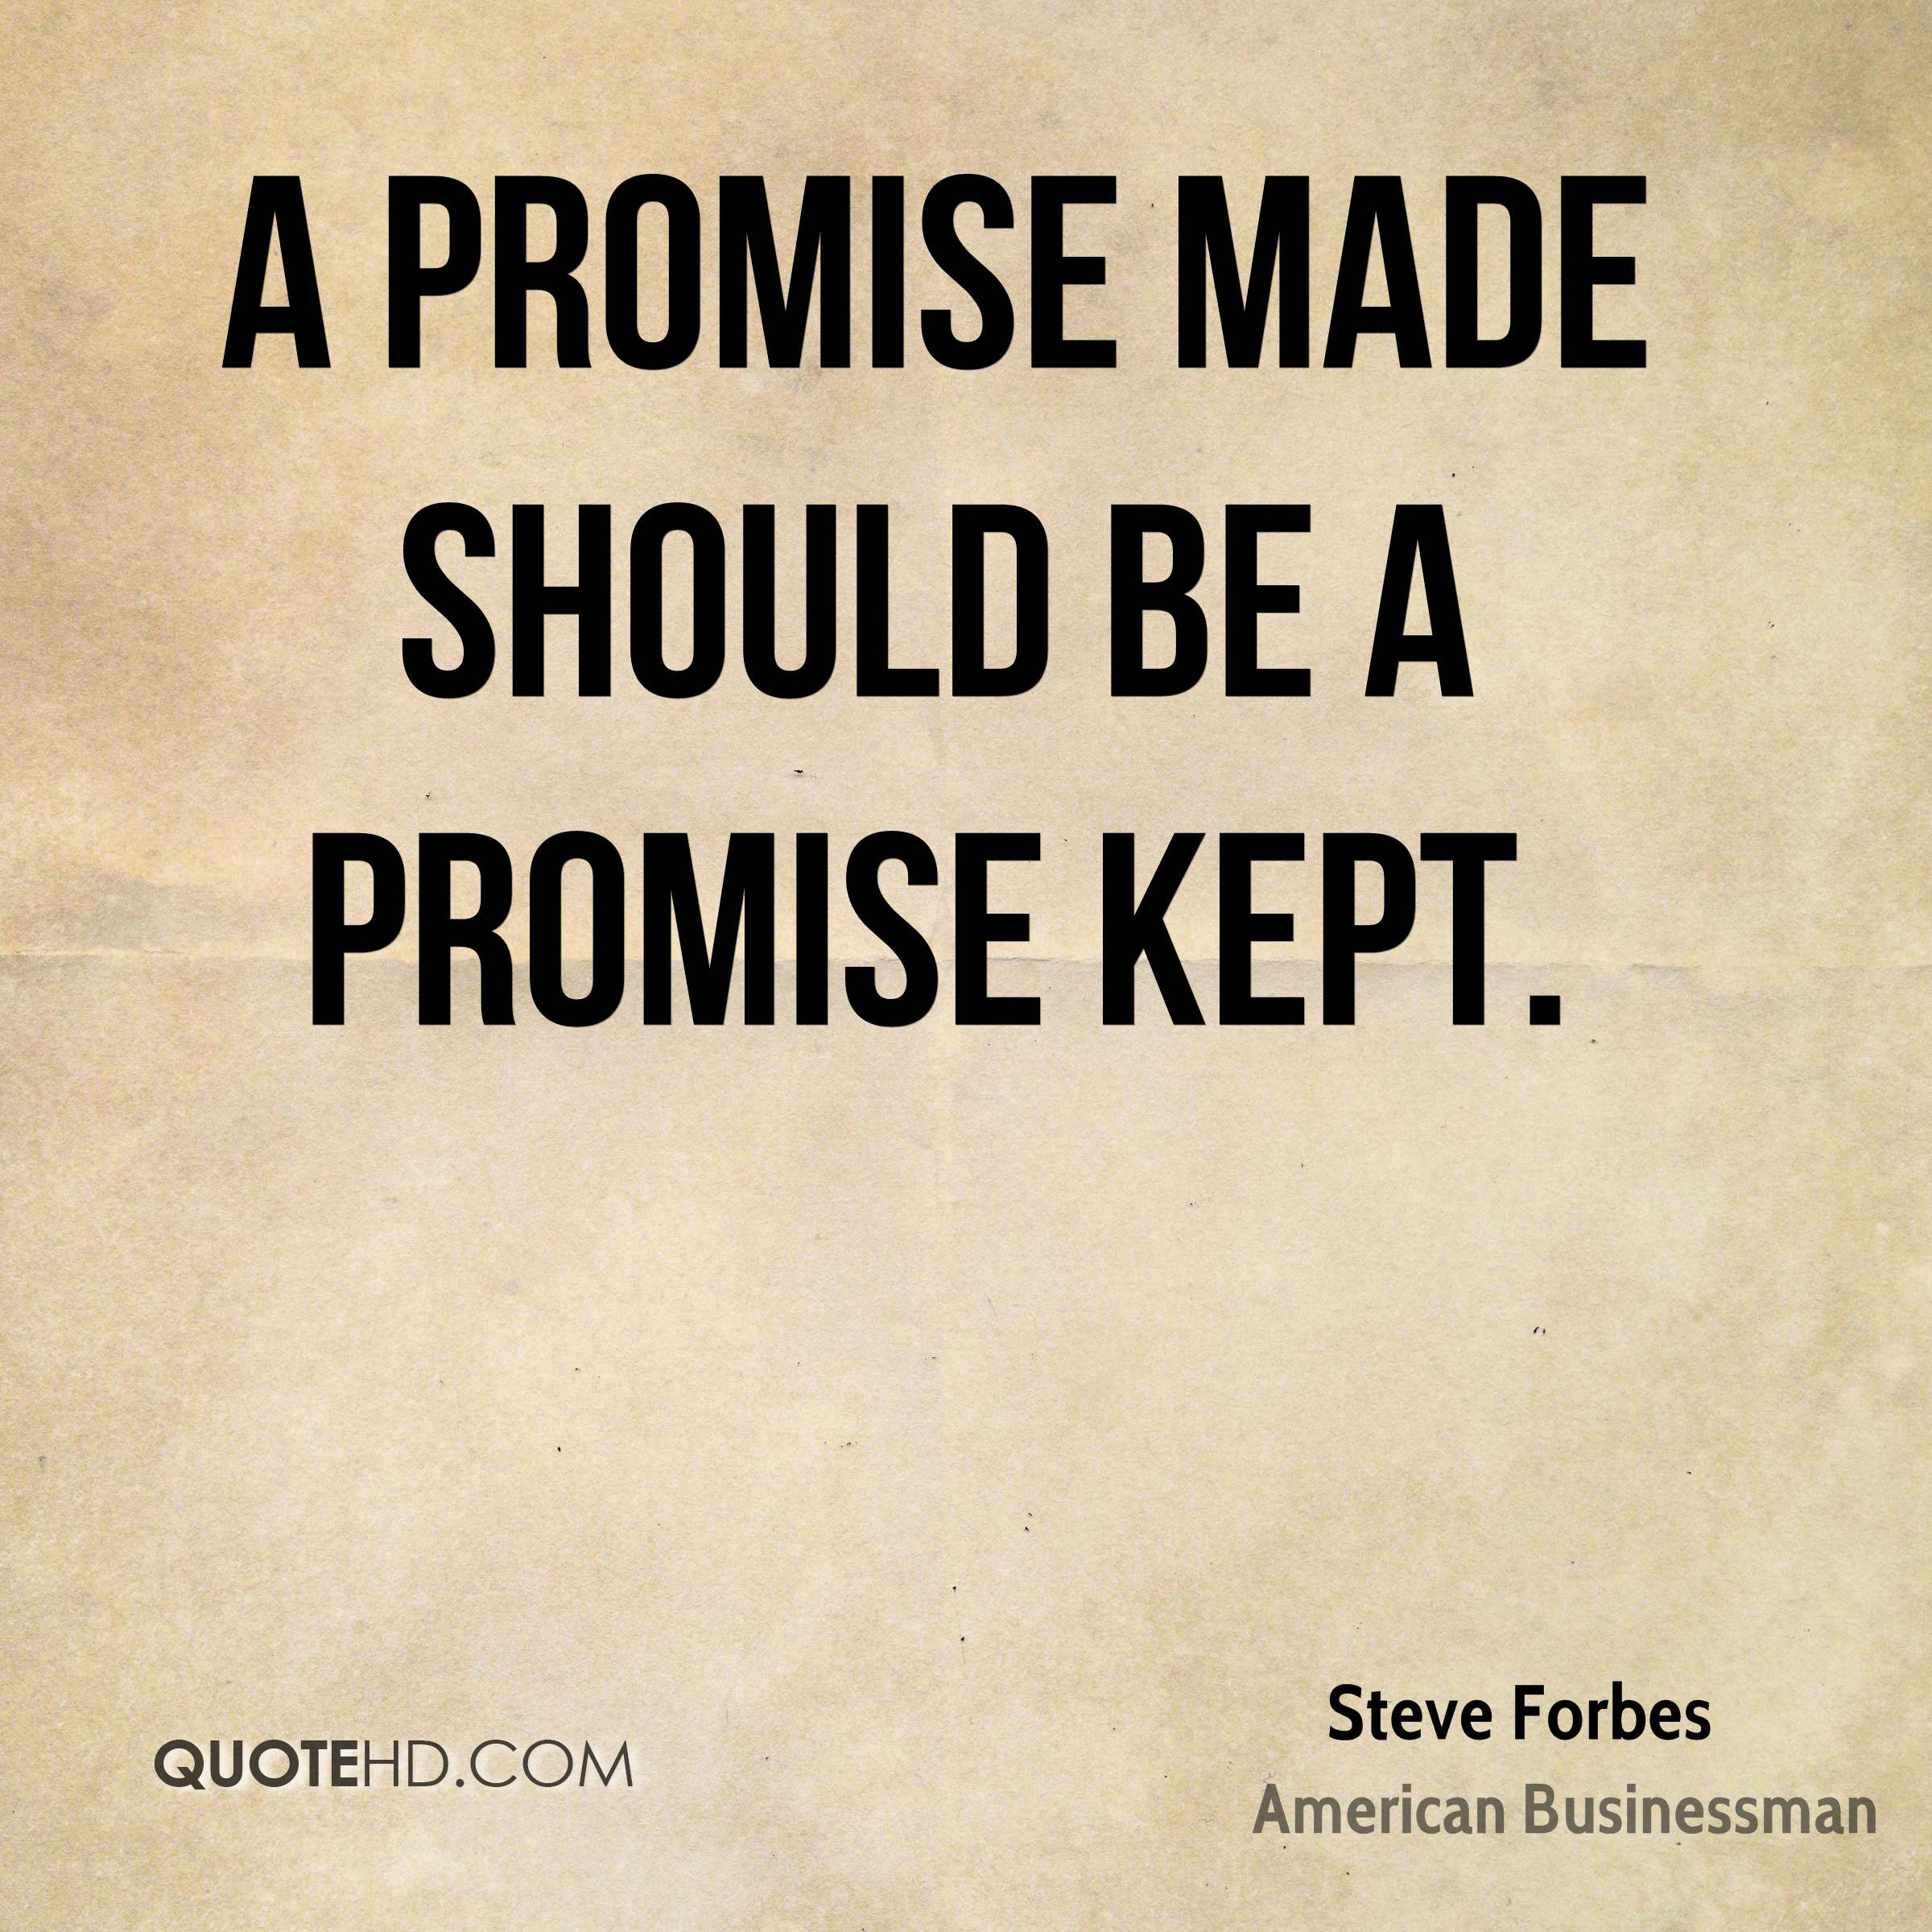 Forbes Motivational Quotes  Steve Forbes Quotes